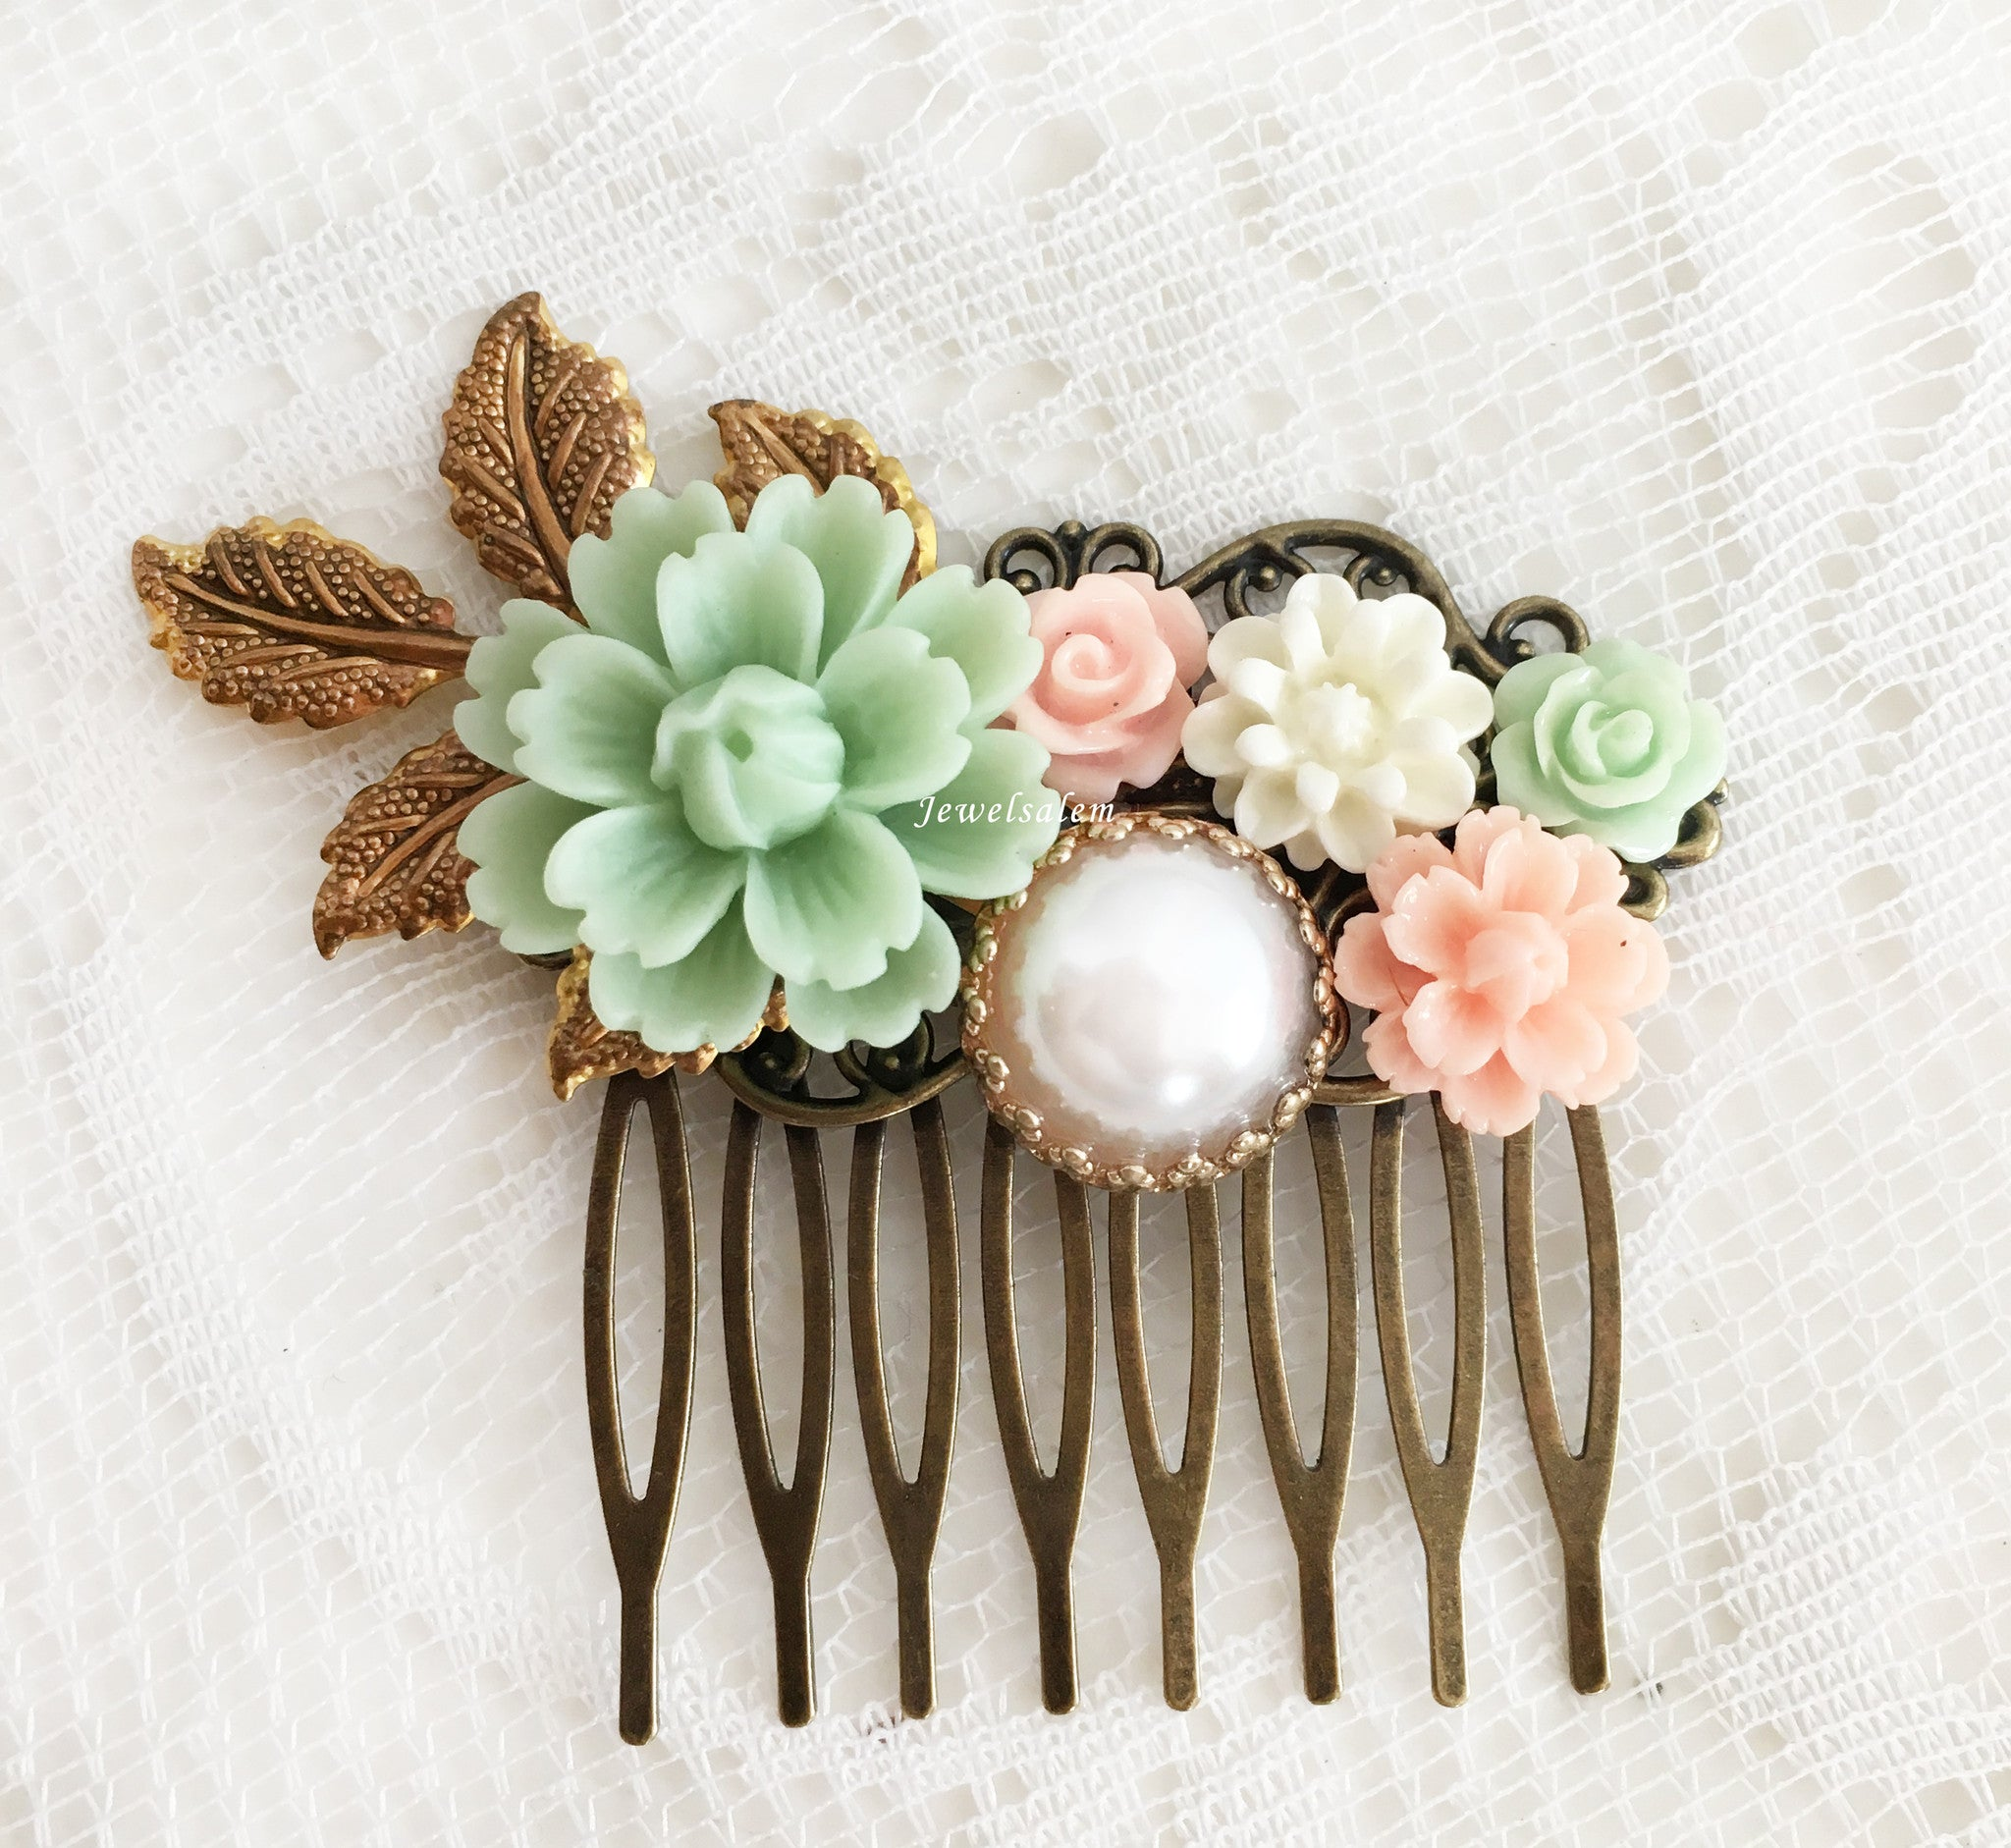 Romantic Bridal Hair Comb Mint Blush Pink Wedding Hair Accessories for Bride Rustic Romantic Floral Hair Adornment - Jewelsalem